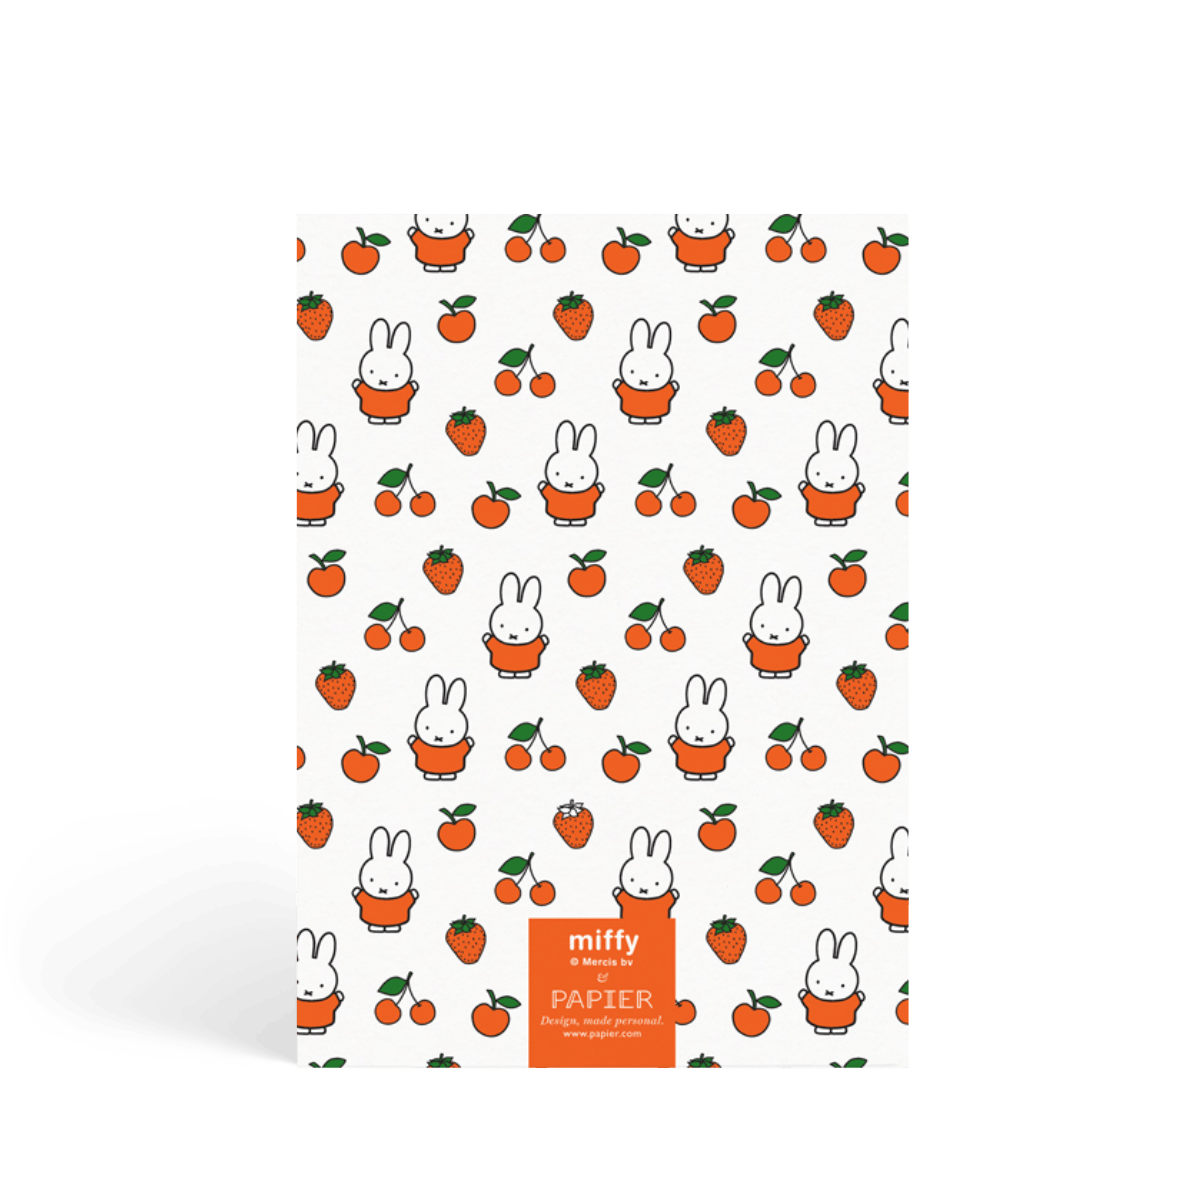 Https%3a%2f%2fwww.papier.com%2fproduct image%2f95599%2f5%2fstrawberry miffy 23972 back 1572966780.png?ixlib=rb 1.1